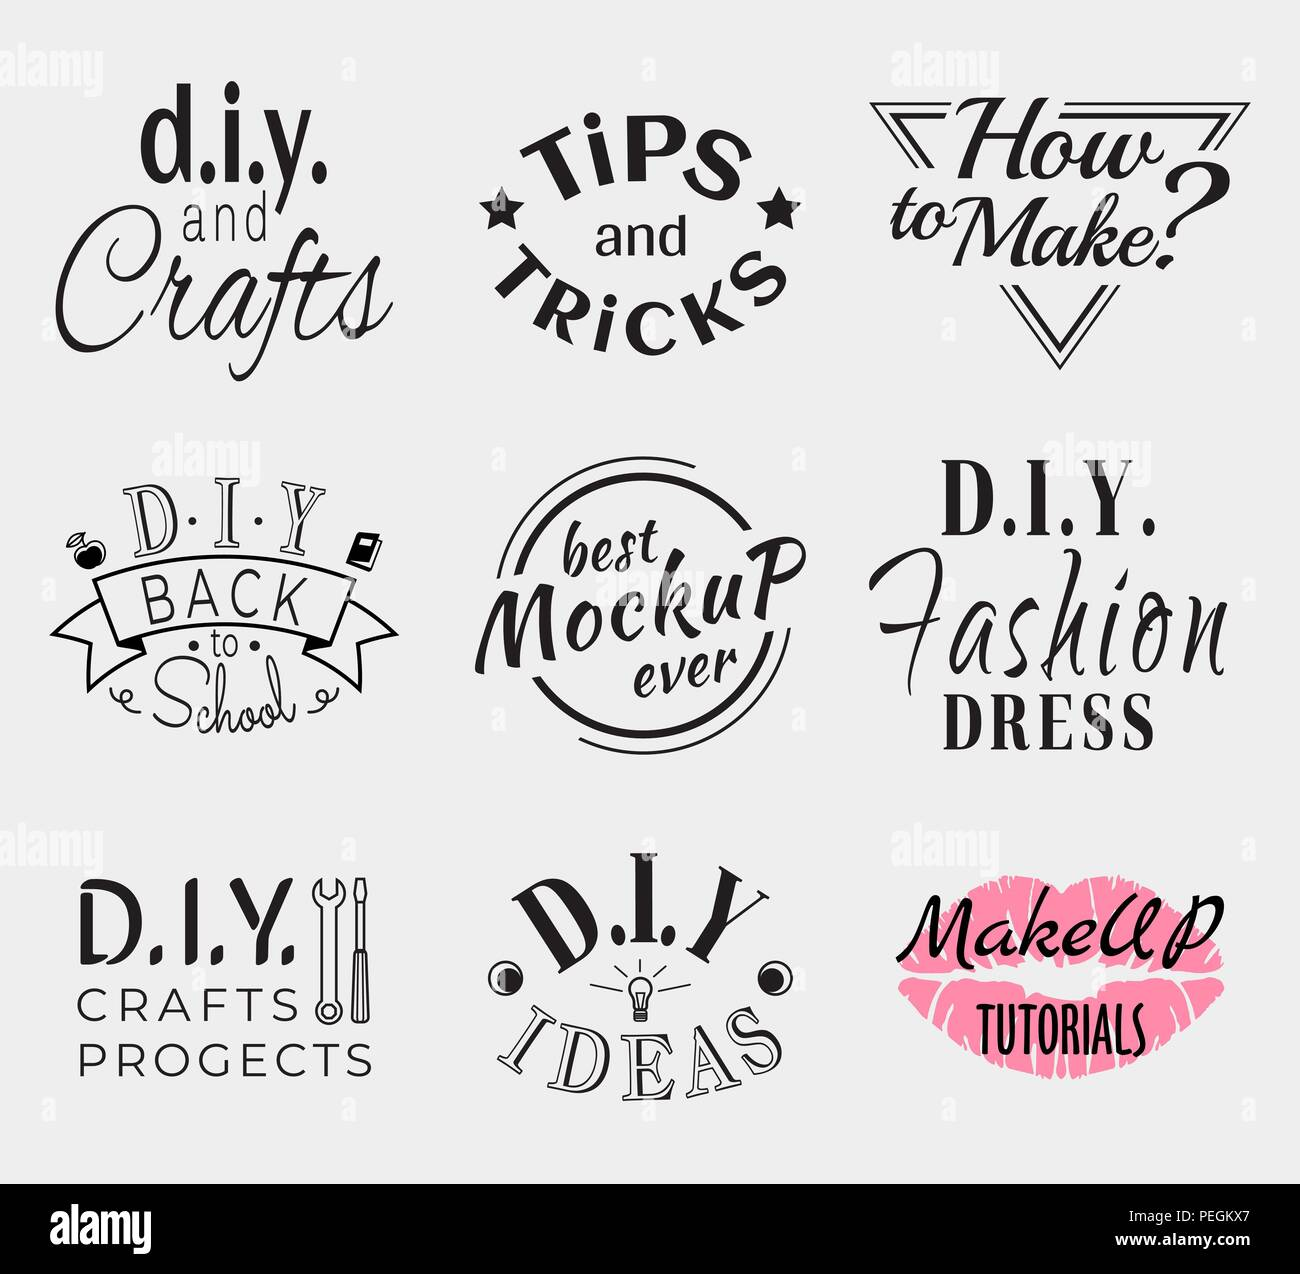 Retro Vintage Insignias or Logotypes set. Vector design elements, business signs, logos, identity, labels, badges, apparel, shirts, ribbons, stickers and other branding objects. - Stock Vector